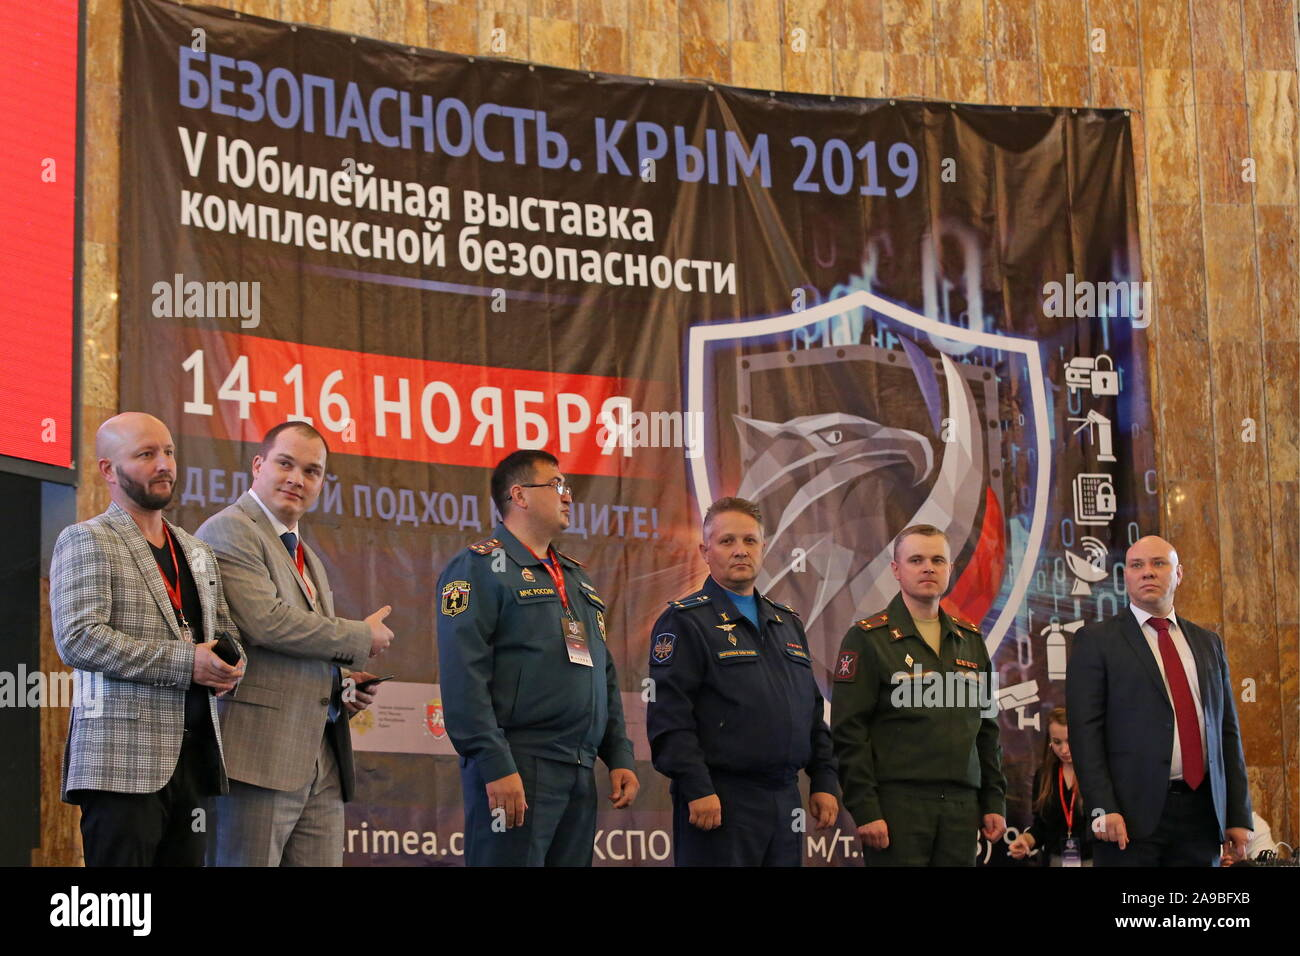 """Yalta, Russia. 14th Nov, 2019. YALTA, CRIMEA, RUSSIA - NOVEMBER 14, 2019: People attend the 5th """"Safety. Crimea 2019"""" integrated security exhibition at the Yalta Intourist Hotel. Individual protective gear, special clothing, firefighting equipment, threat warning systems, video surveillance systems, etc are on display at the exhibition. Sergei Malgavko/TASS Credit: ITAR-TASS News Agency/Alamy Live News Stock Photo"""